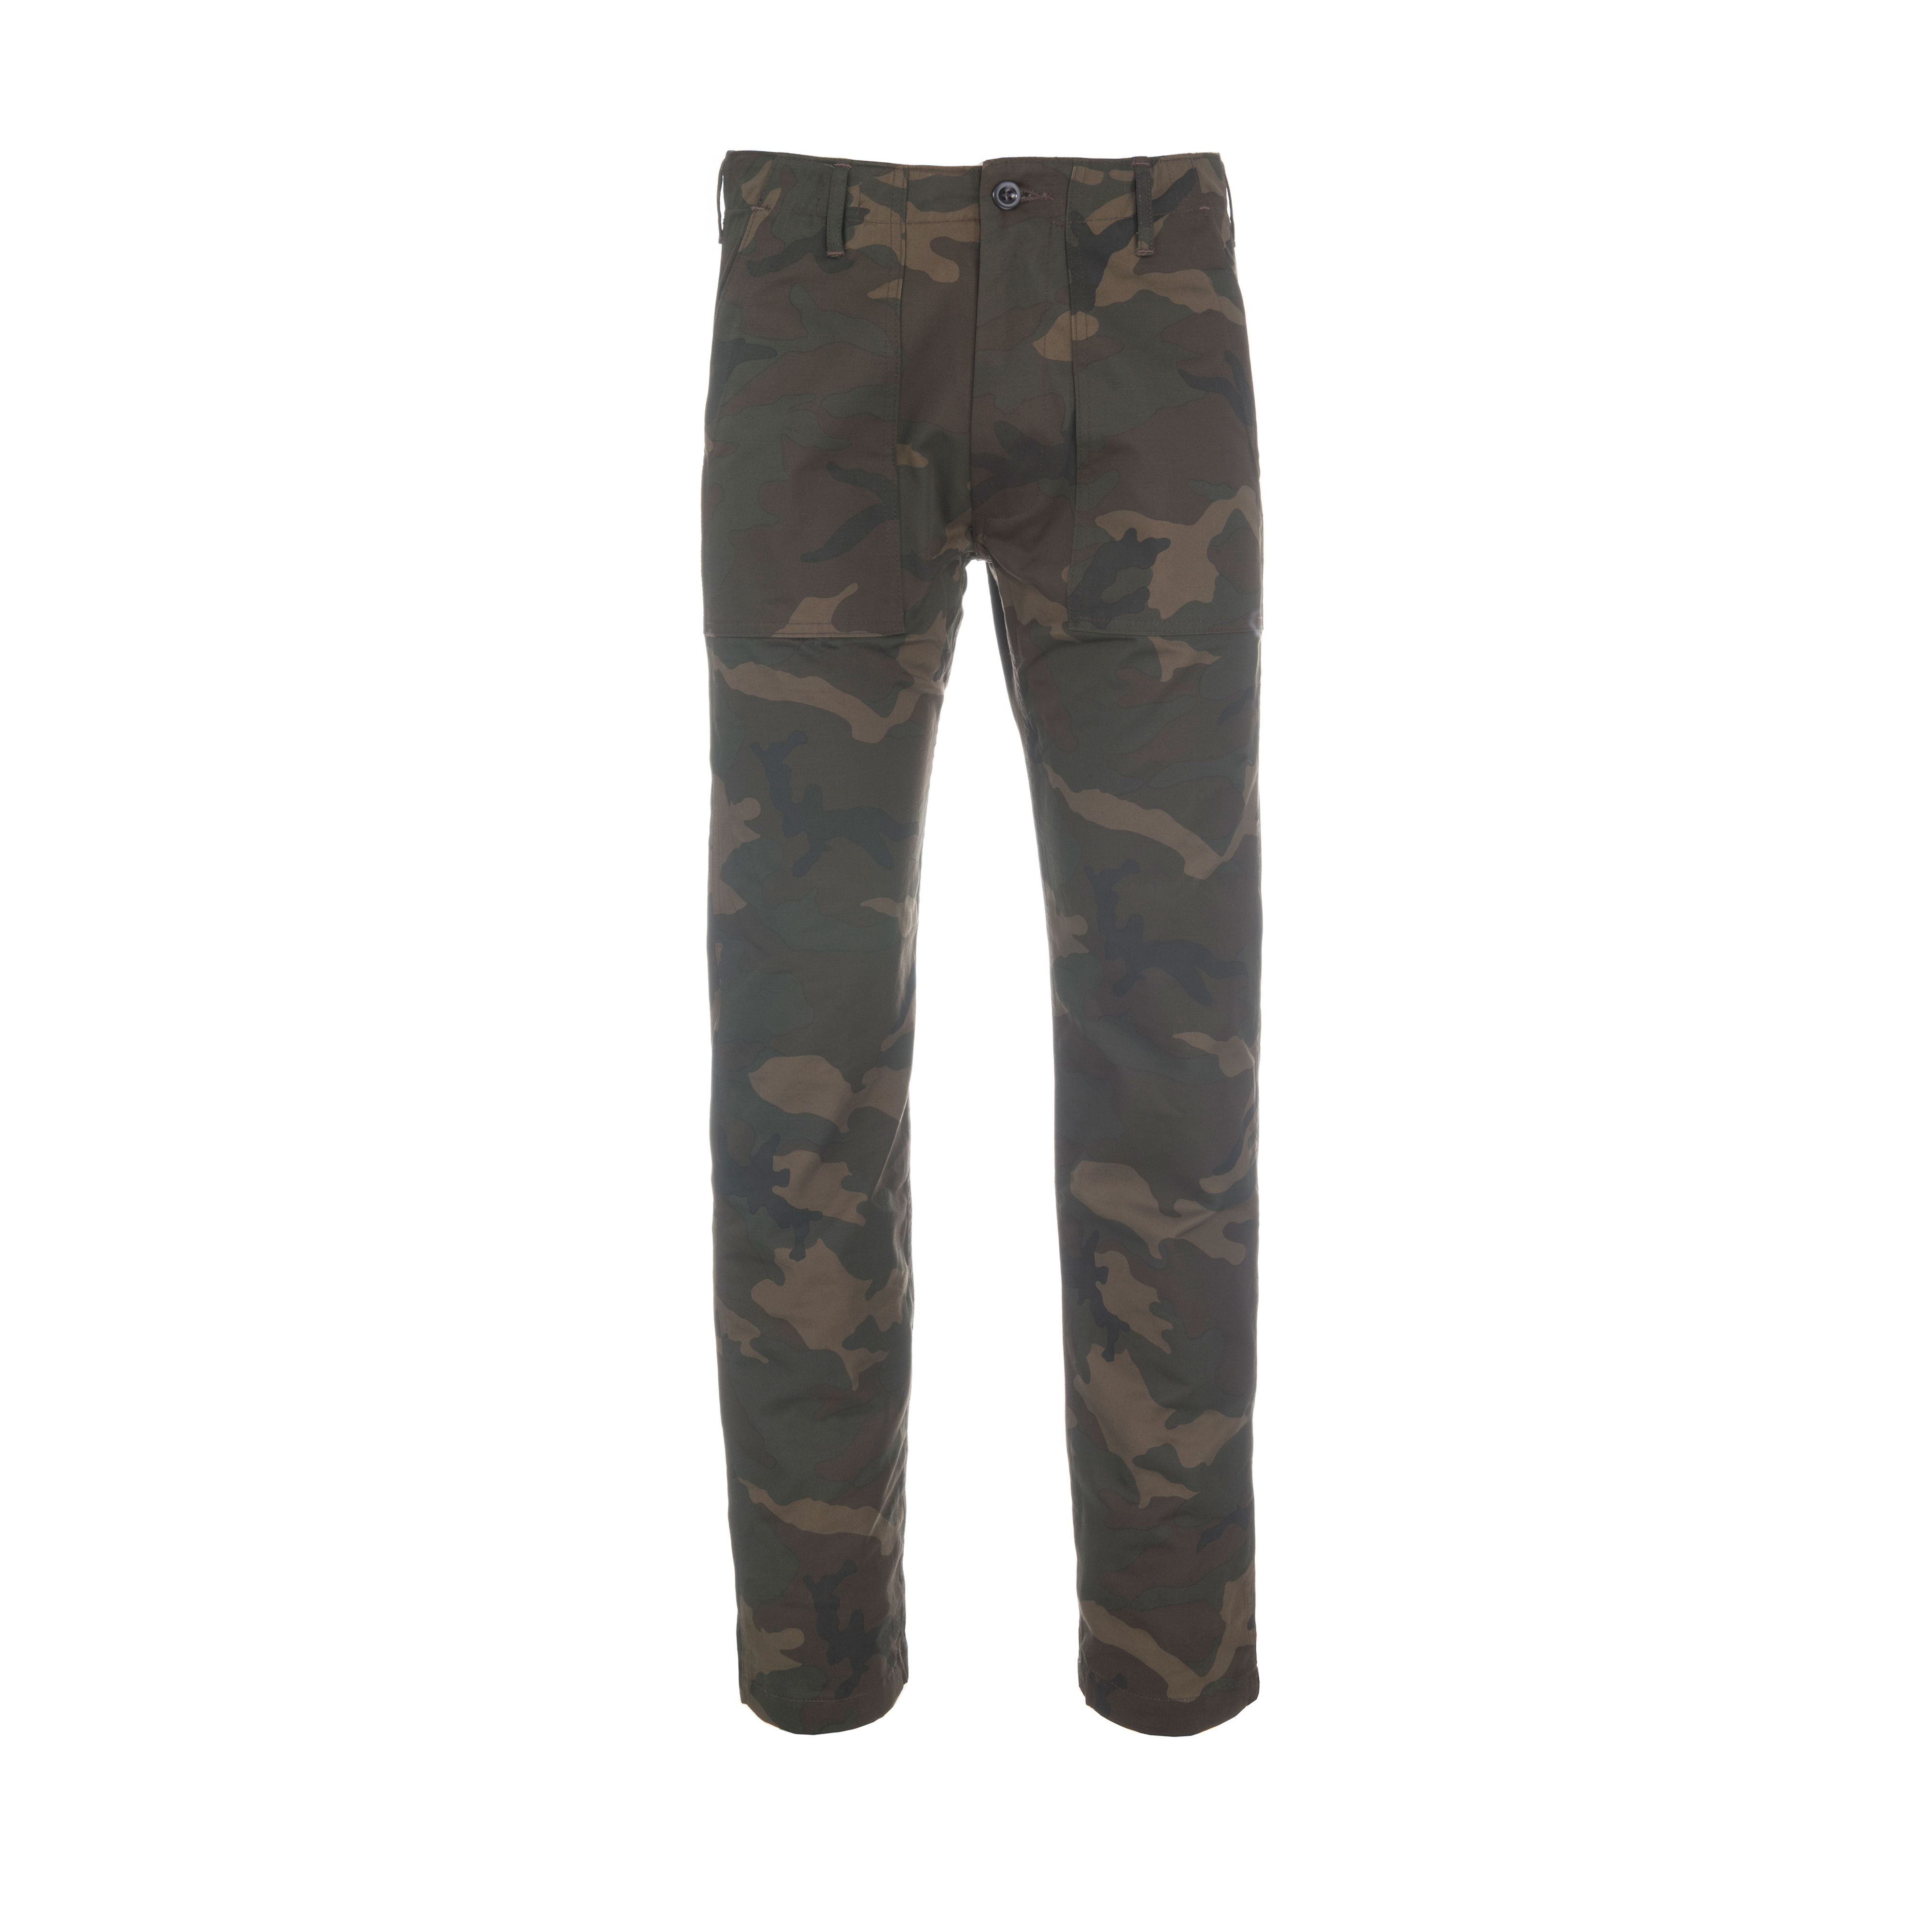 Fatigue Pant Camouflage